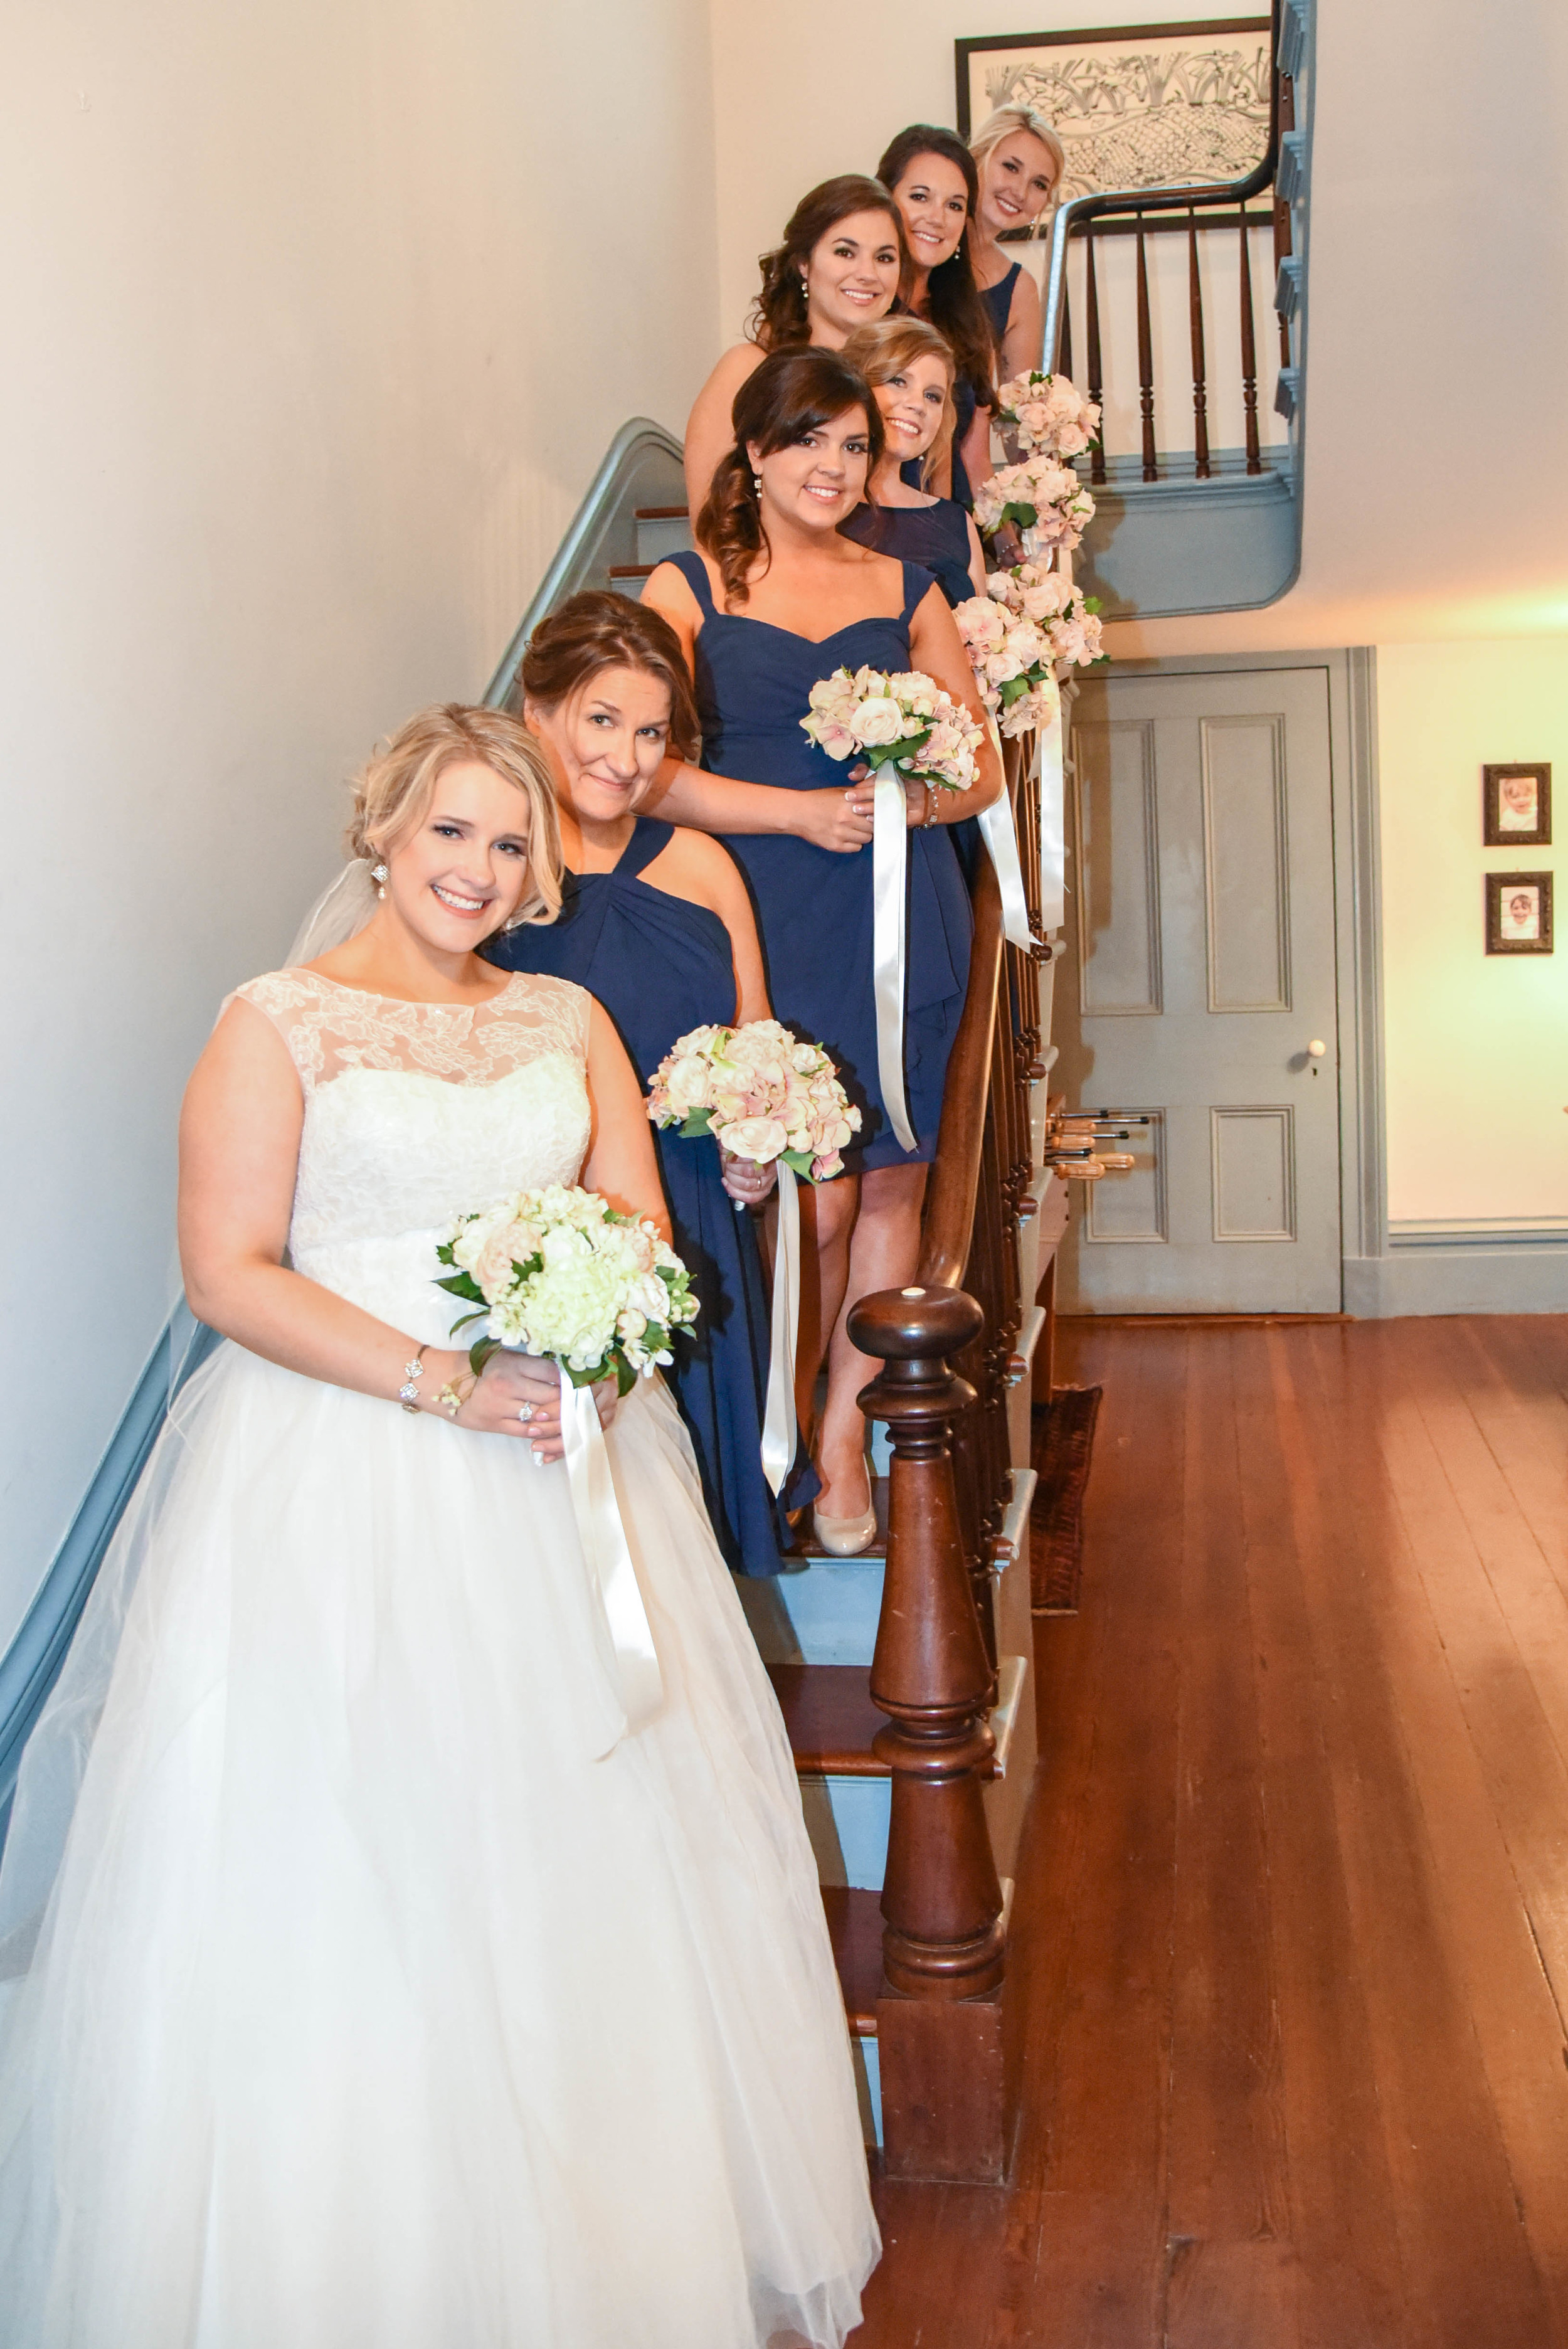 St Francis staircase brides (1 of 1).jpg